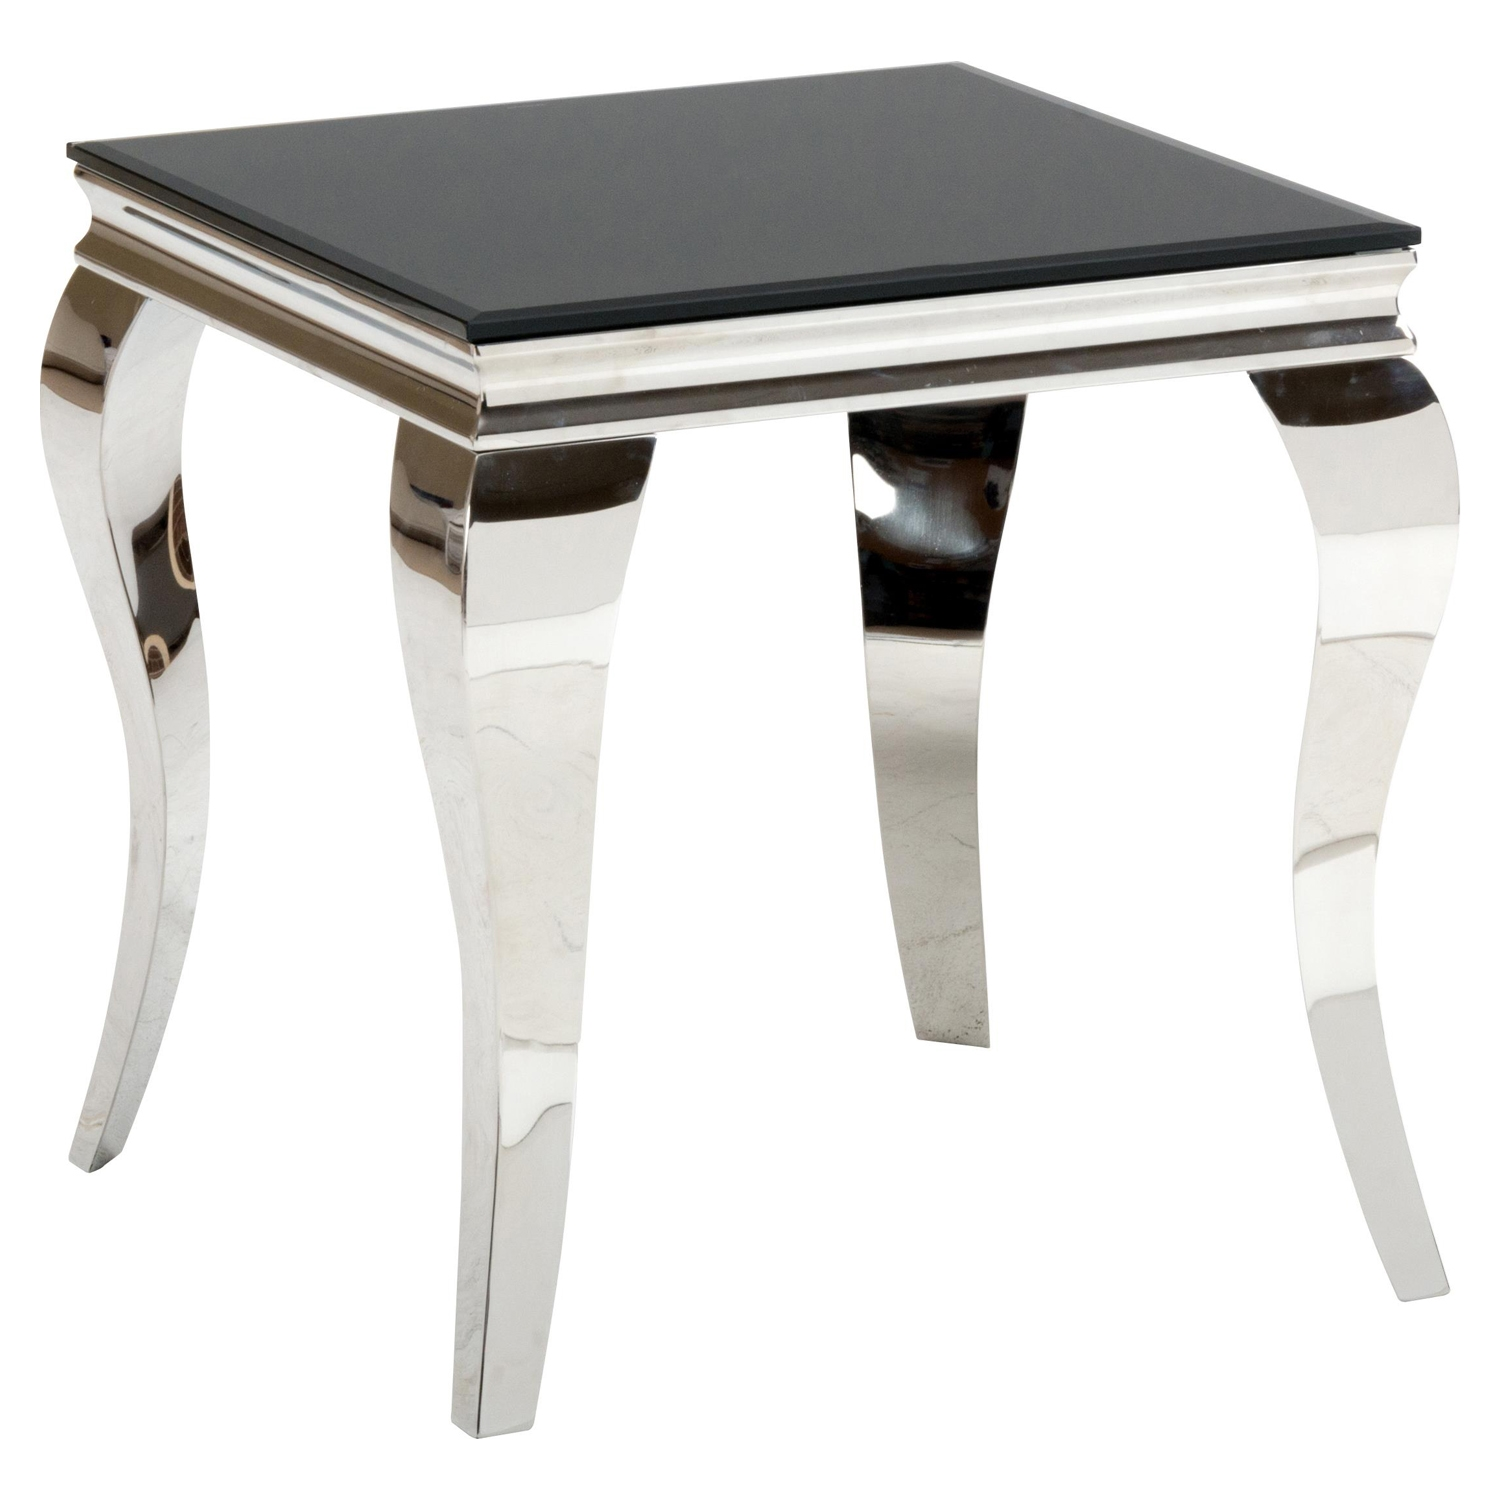 Tuxedo End Table - Stainless Steel and Black